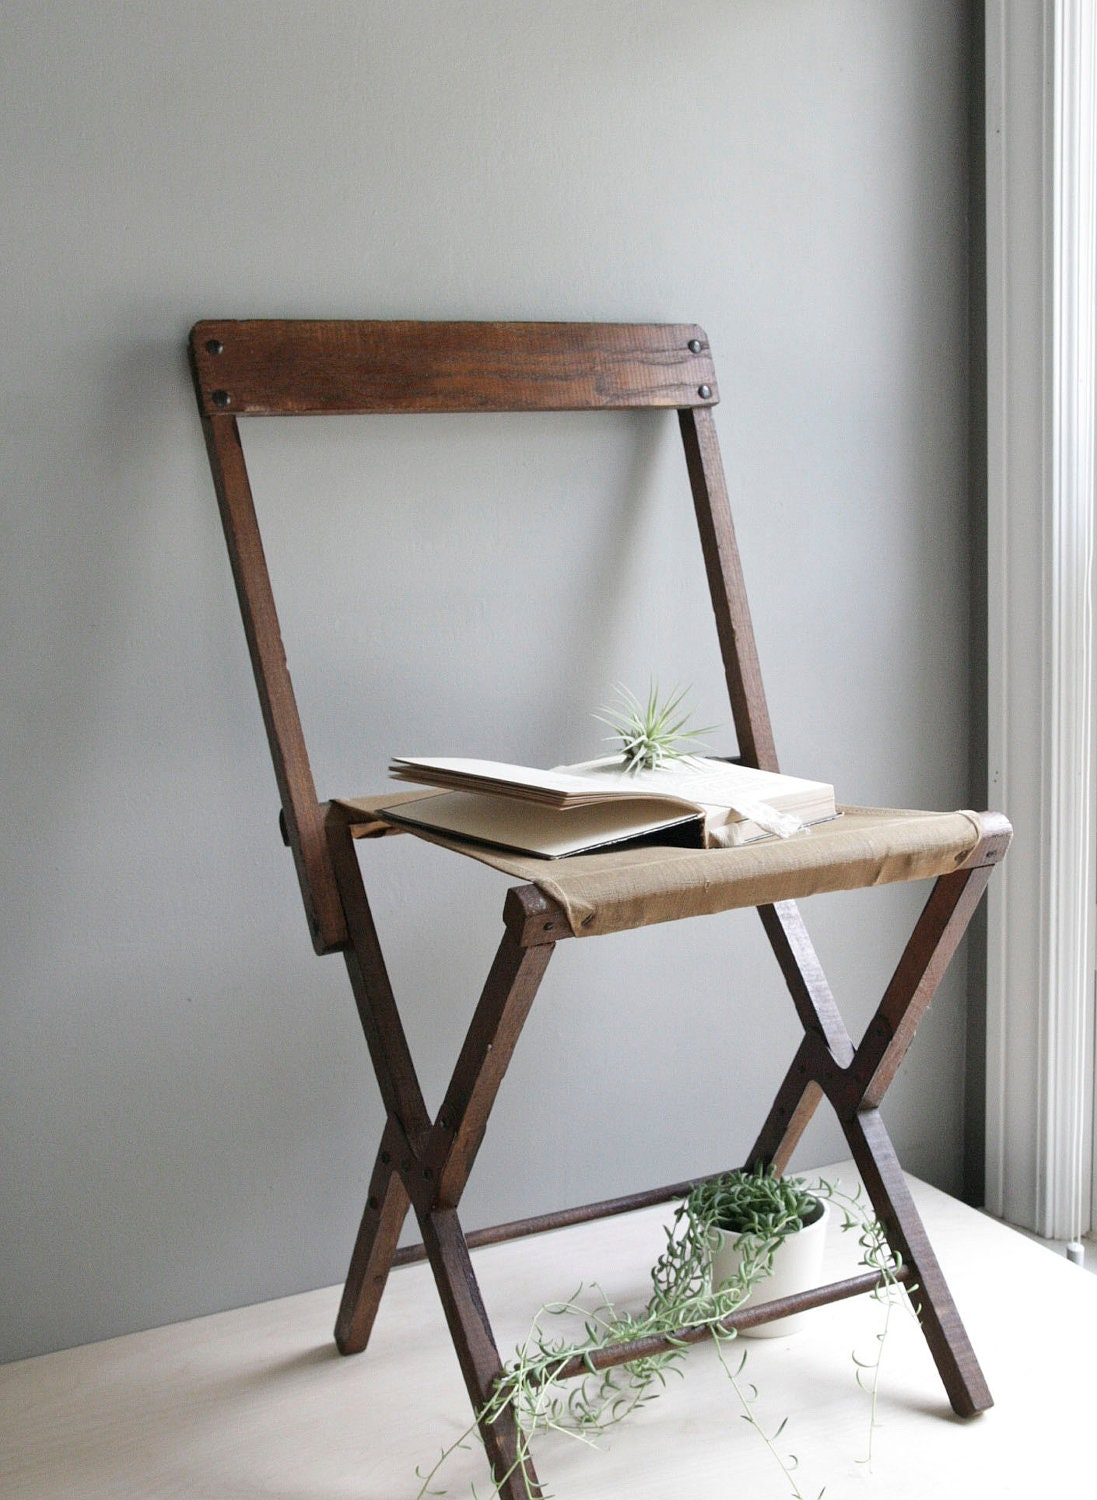 antique canvas folding chair by ohalbatross on Etsy